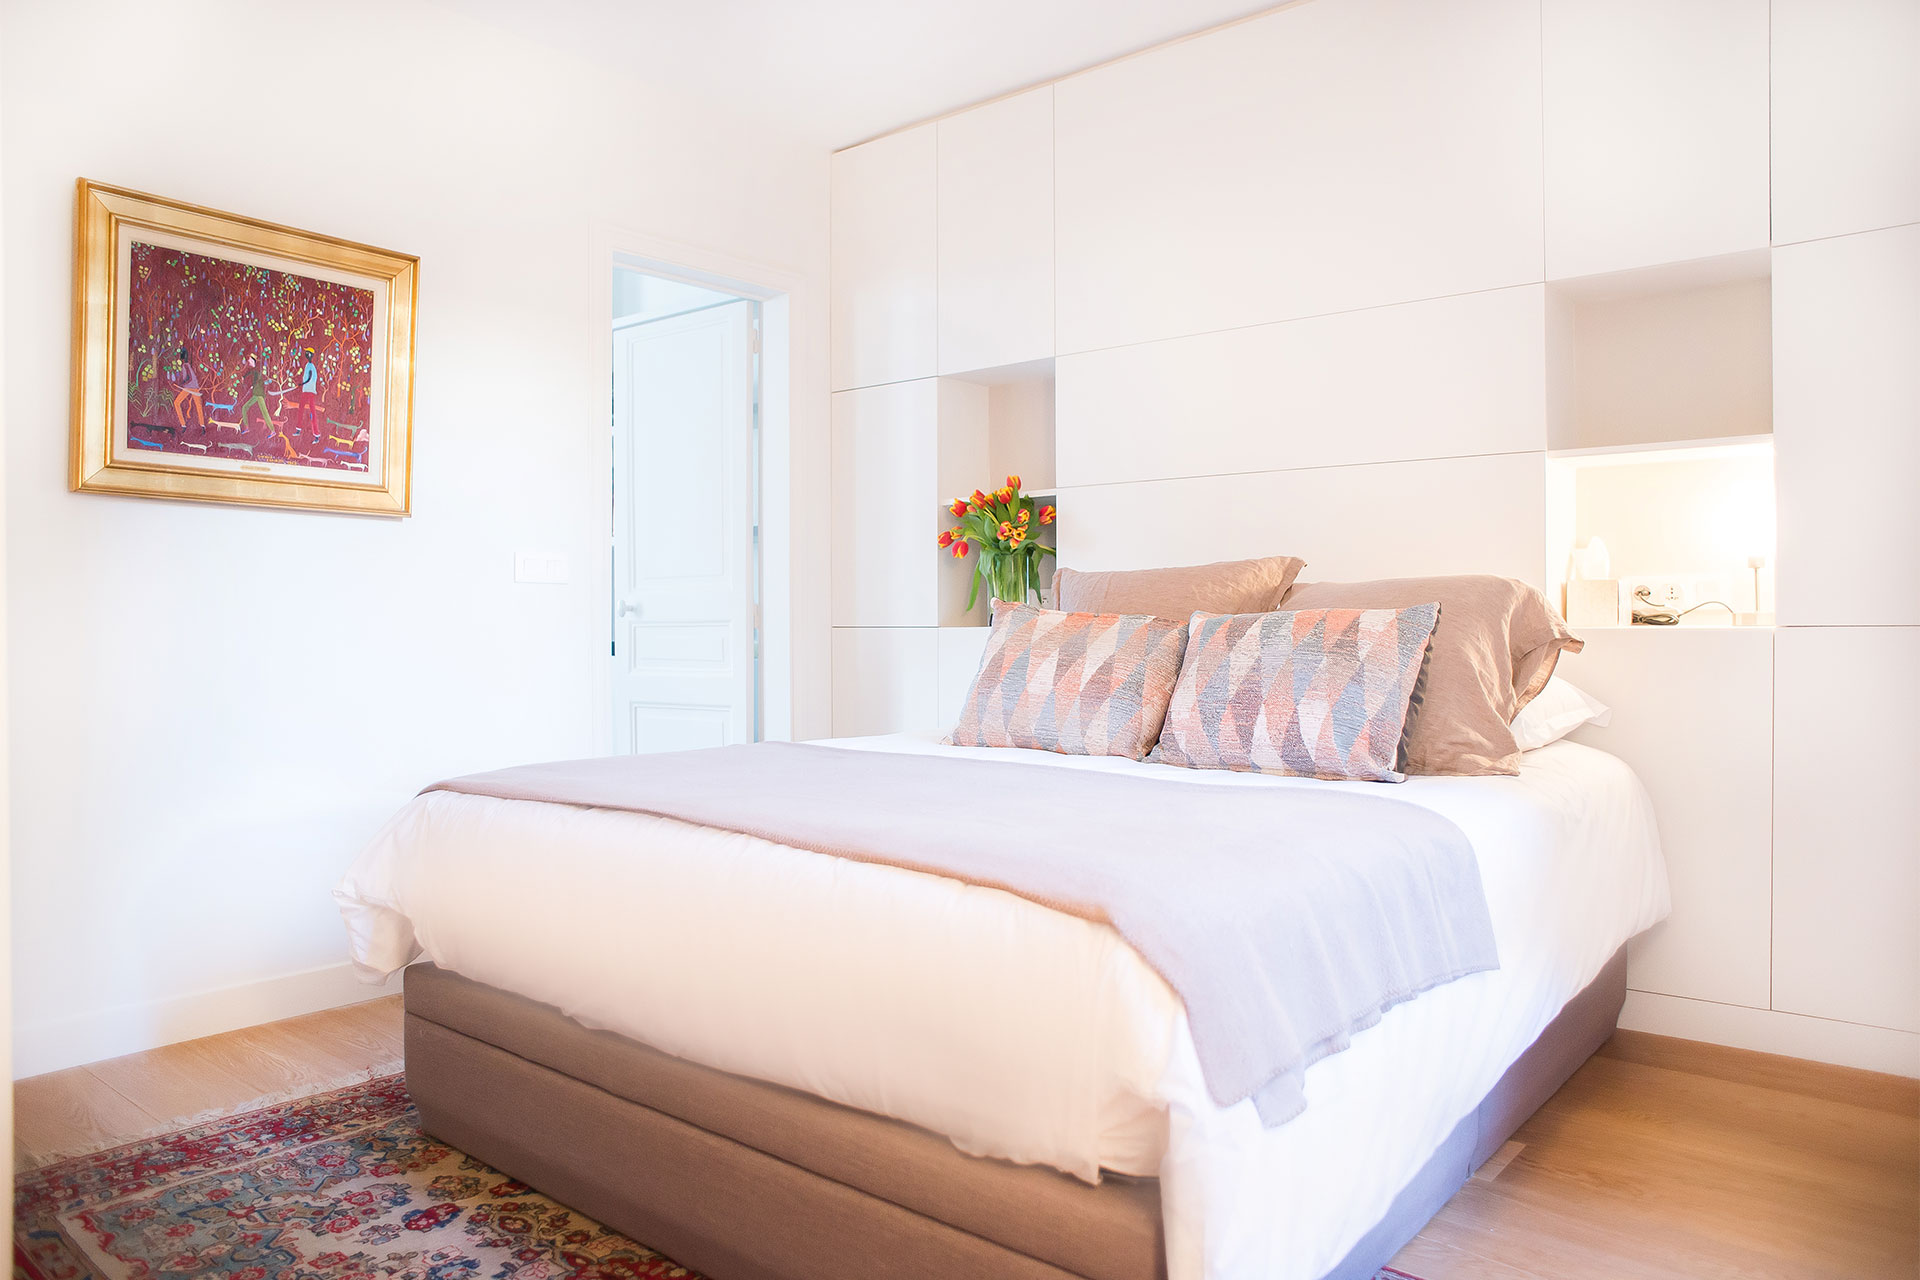 Private bedroom in the Saint-Bris vacation rental